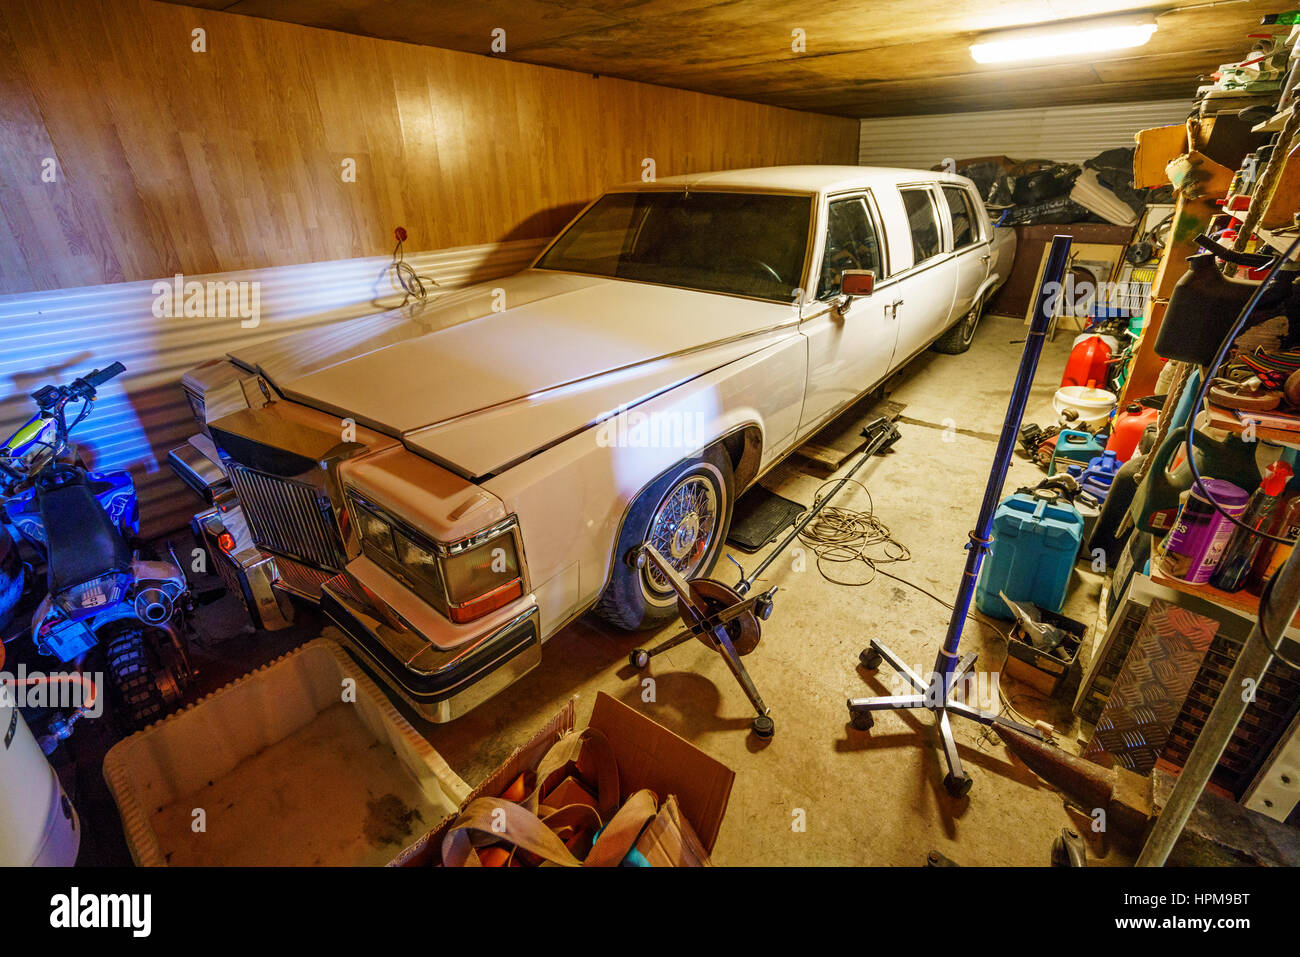 Cadillac in a workshop, Eastern Iceland - Stock Image